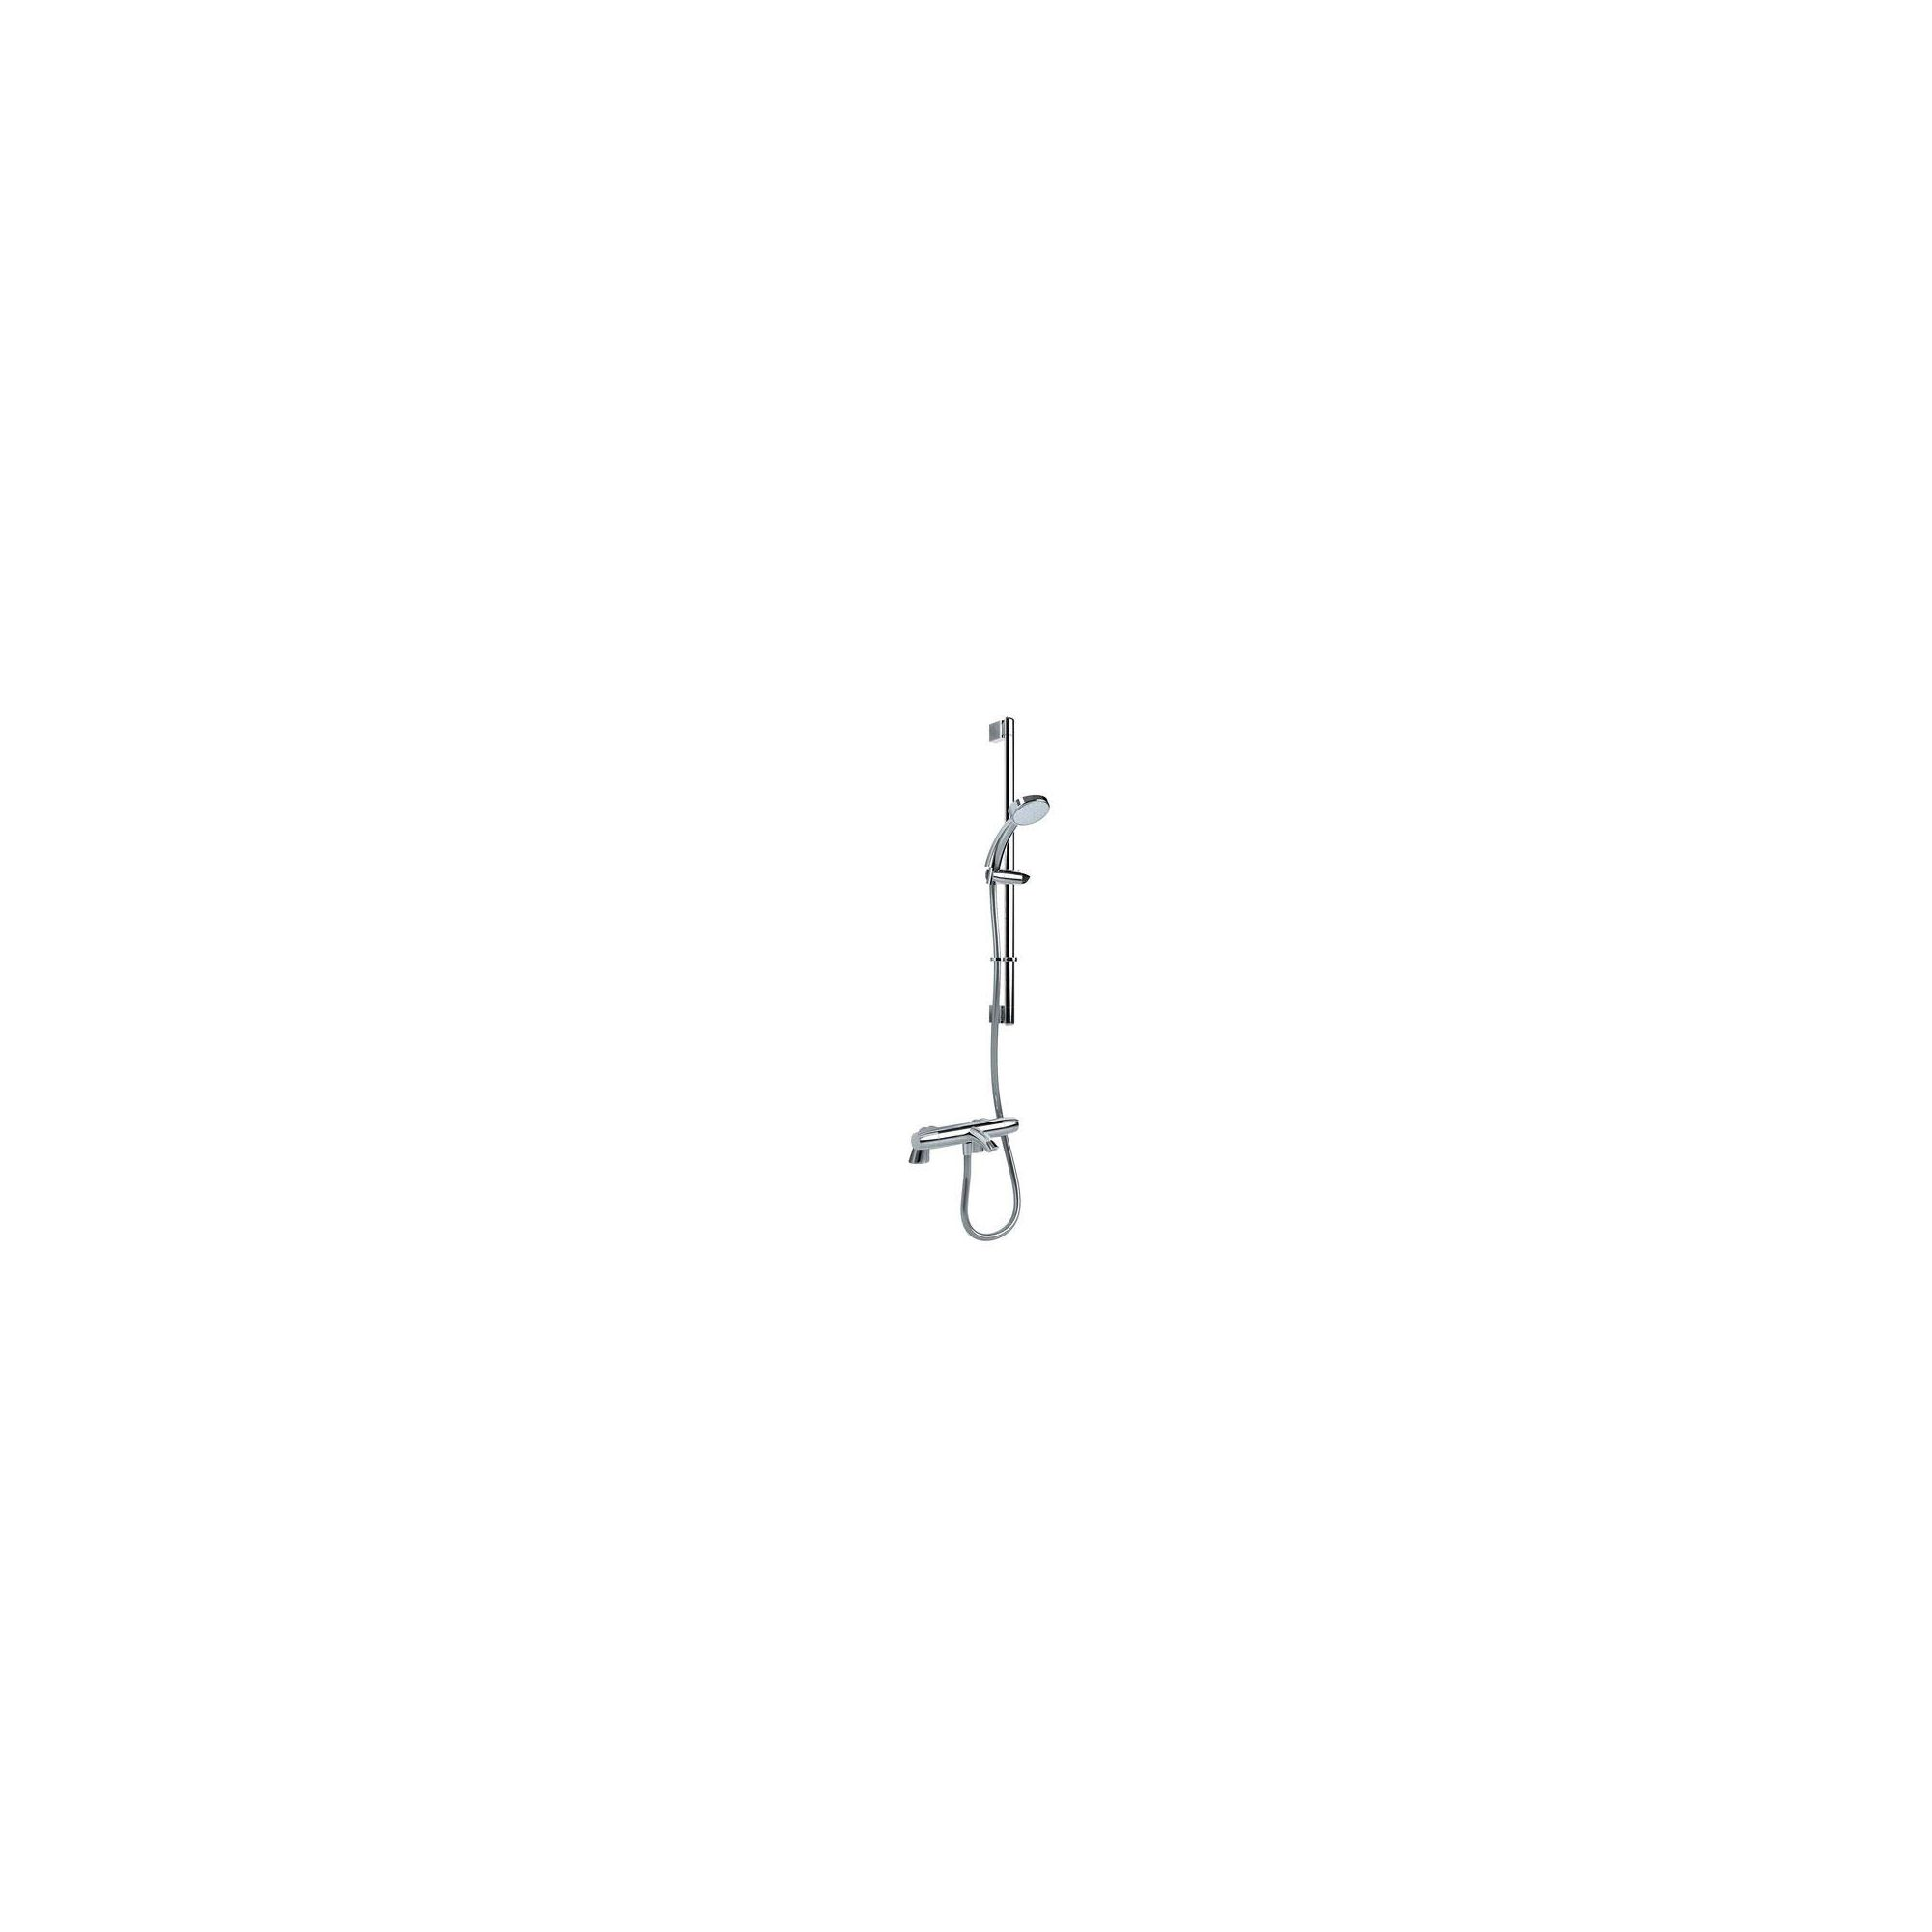 Inta Sulis Thermostatic Bath Shower Mixer Tap with Shower Kit and Legs Chrome at Tesco Direct